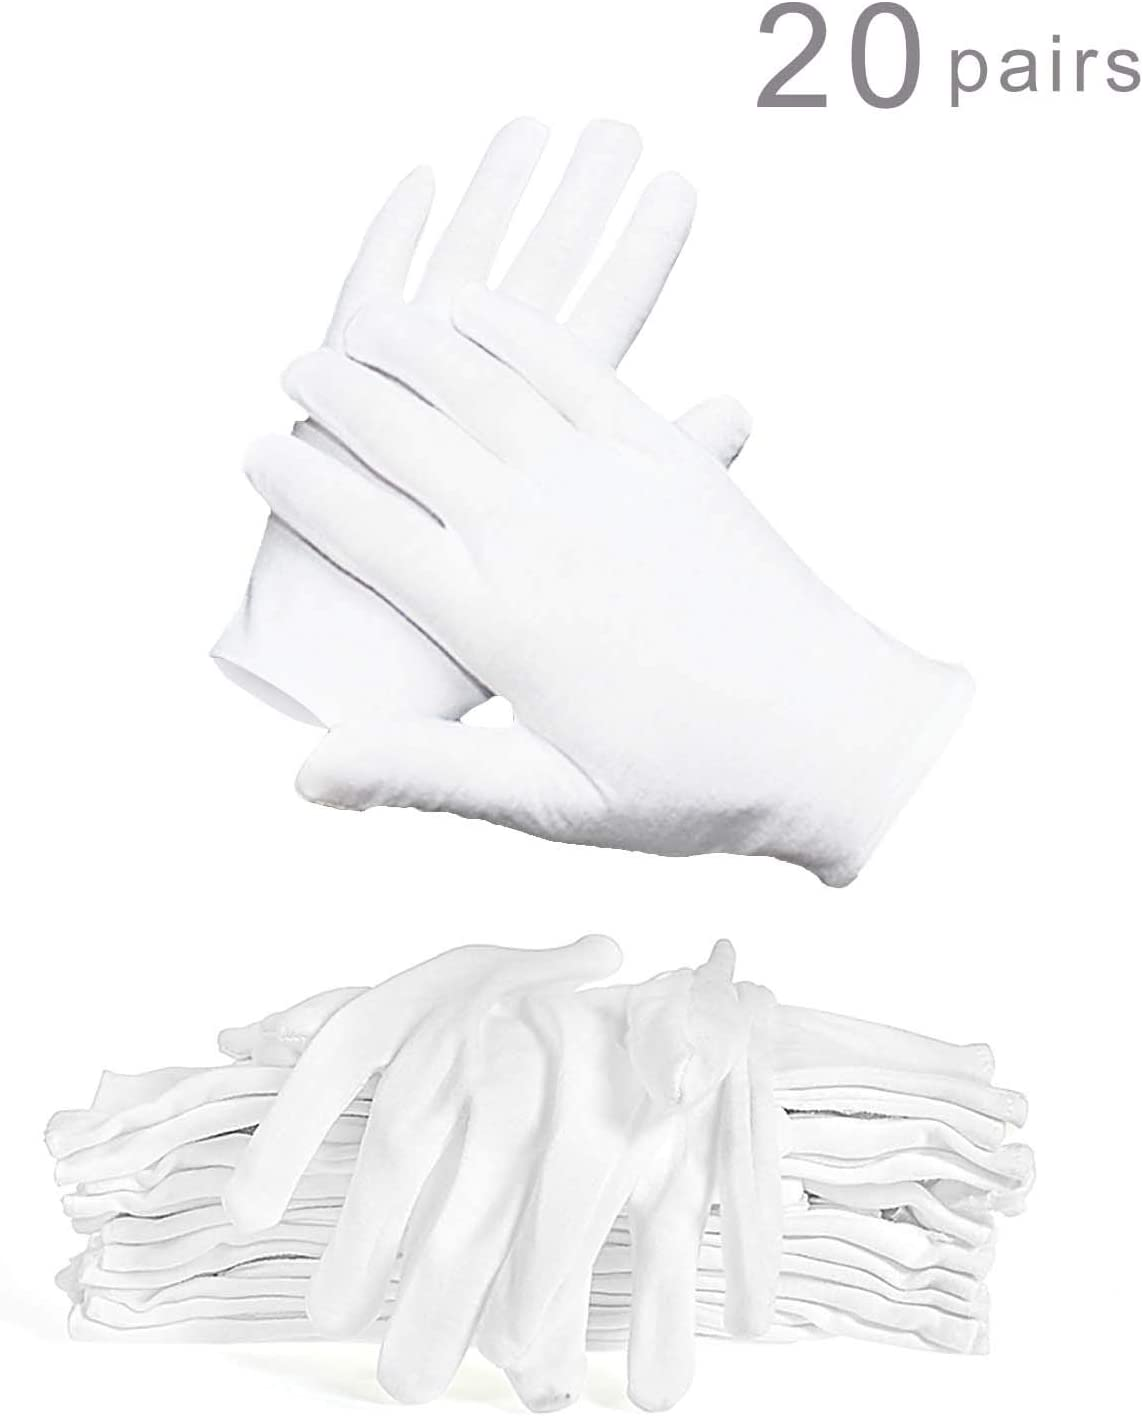 WTSHOP 20 Pairs White Working Glove, Lightweight And Thin Soft Protective Working Glove White Cotton Gloves Work Gloves For Ceremony White Gloves Cotton Gloves Working Glove White Gloves Cotton